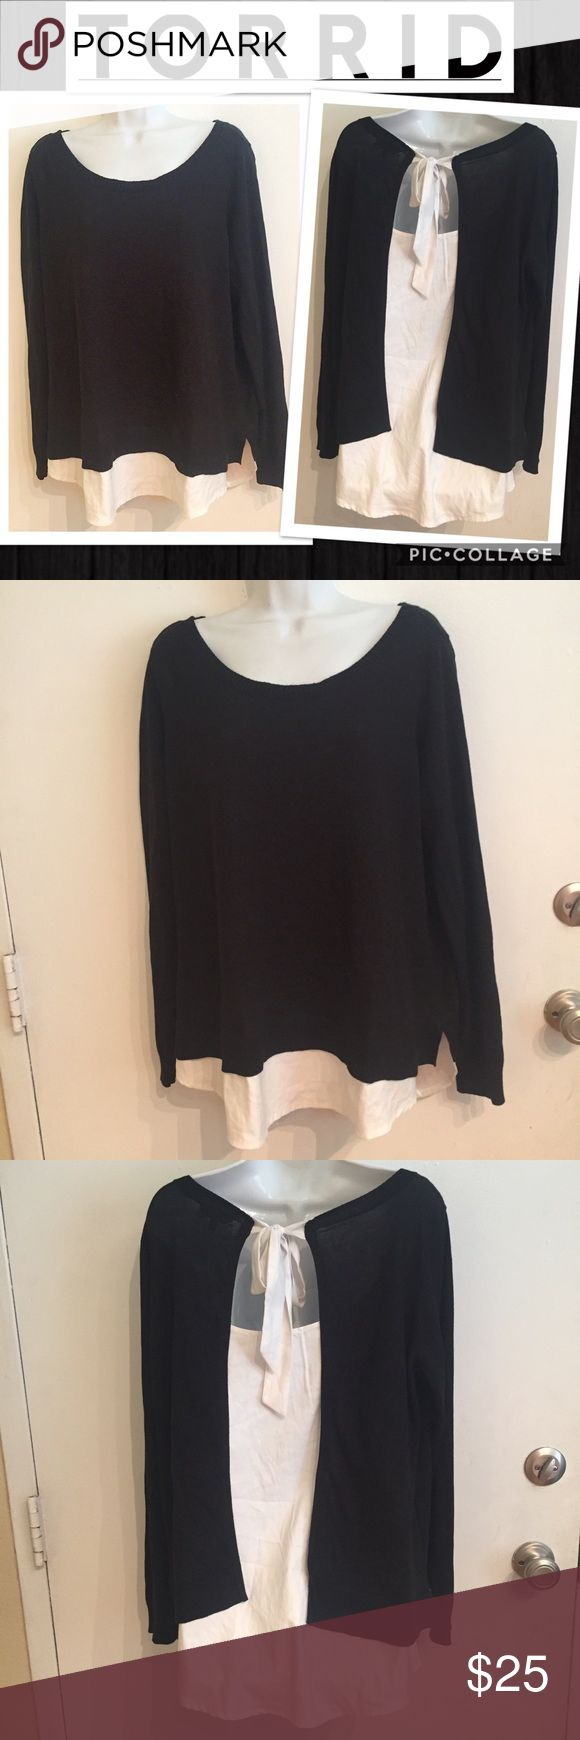 Torrid Faux Layered Tie Back Top Torrid Faux Layered top with black sweater material with open back and white Silky Faux layer with tie at back of the neck. Size 0x. #torrid #faux #layered #top #sweater #bow #tie #plus #plussize #punkydoodle  No modeling Smoke free home I do discount bundles torrid Tops